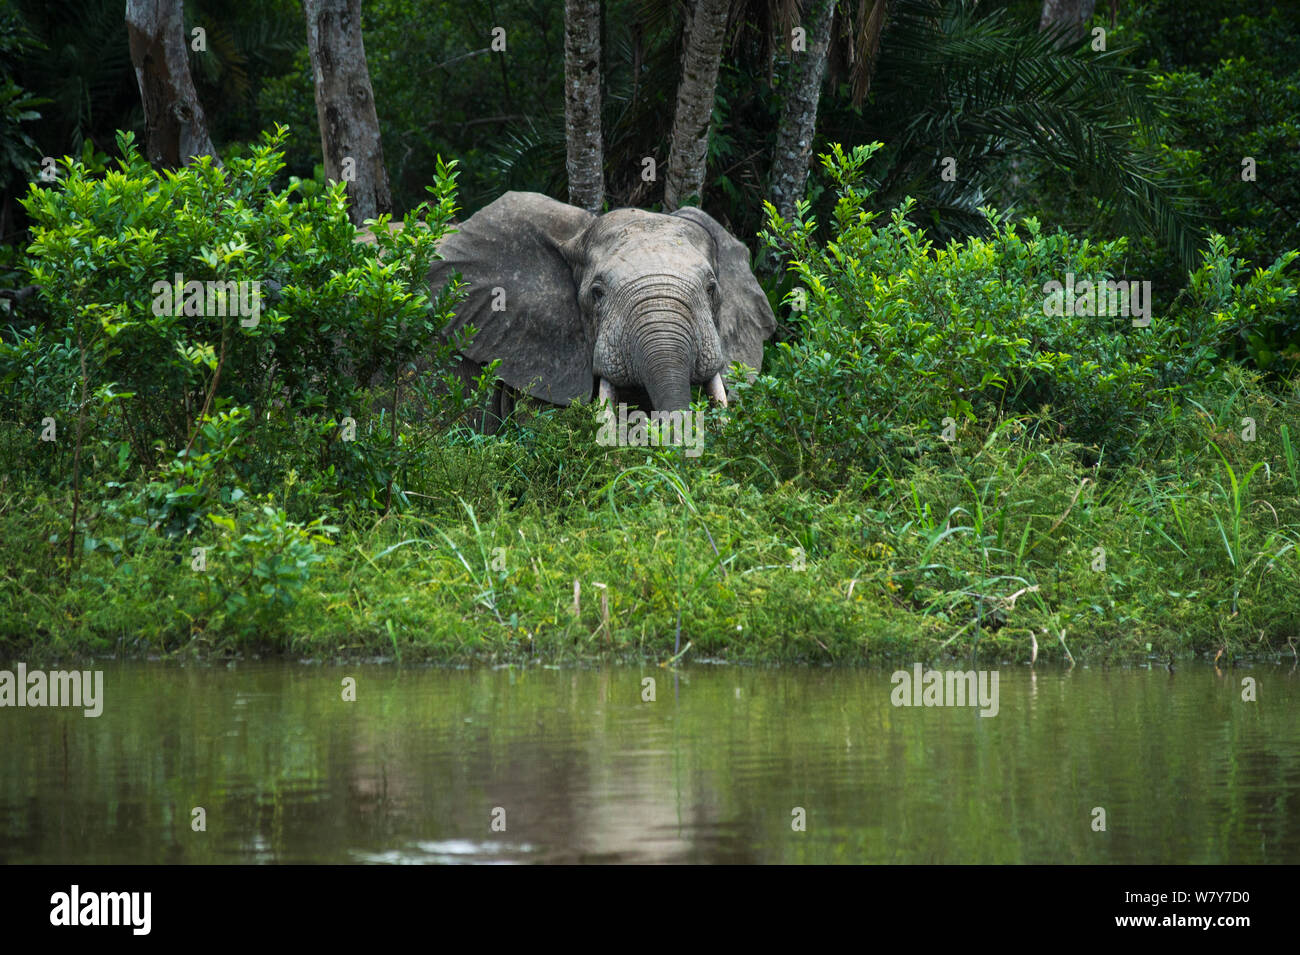 African forest elephant (Loxodonta cyclotis) at edge of water. Lekoli River, Republic of Congo (Congo-Brazzaville), Africa. Vulnerable species. Stock Photo